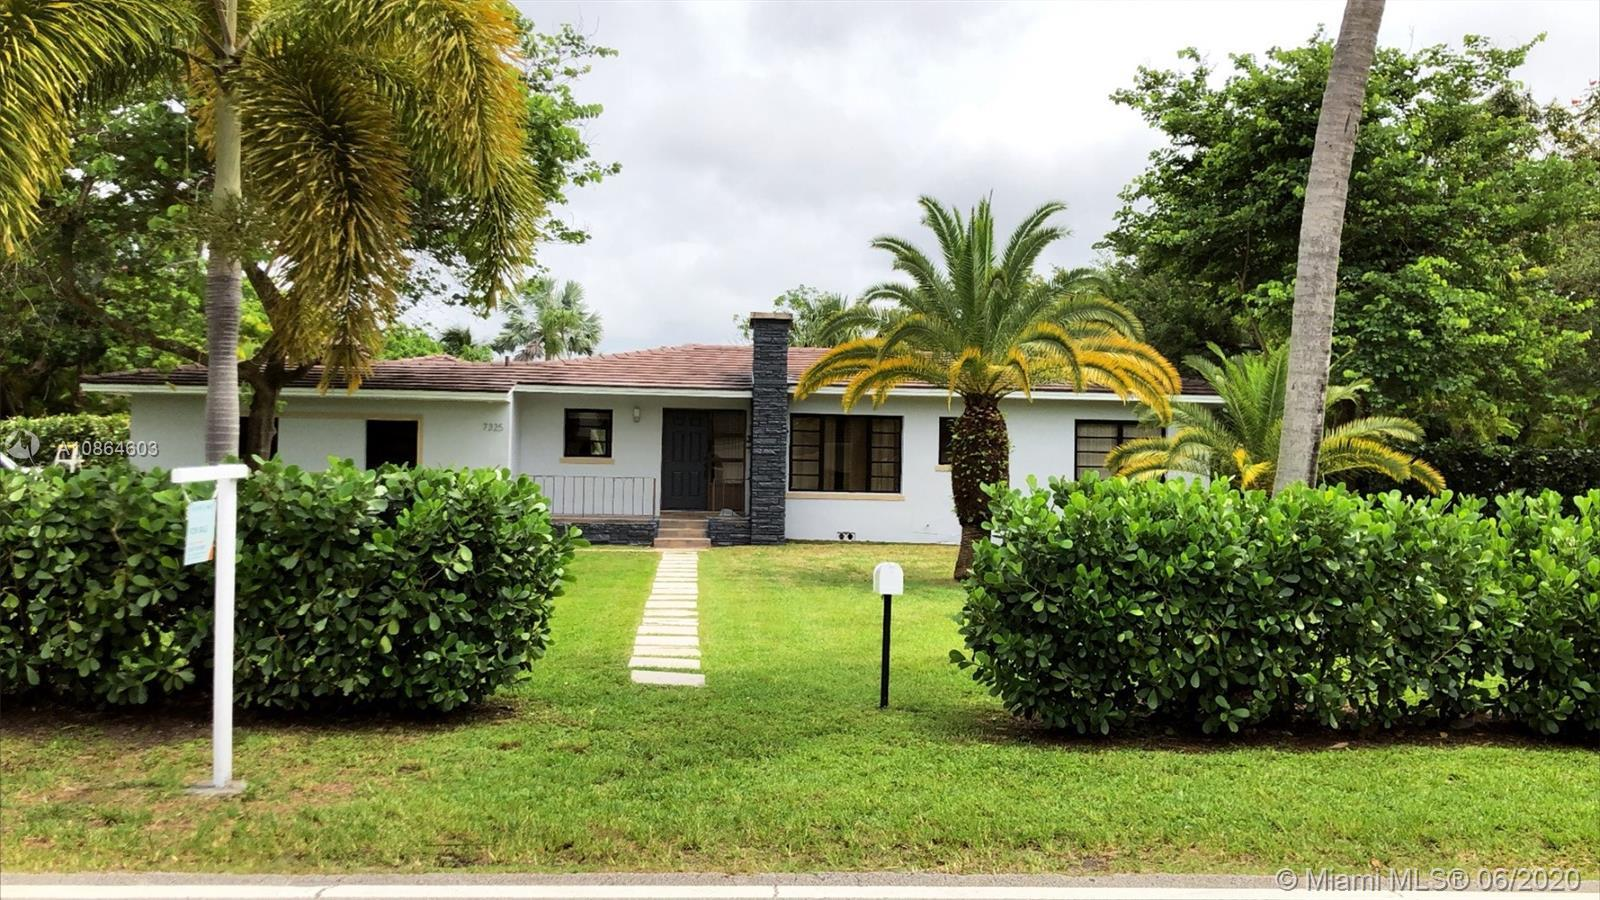 North Pinecrest home sitting on a sprawling 46000+ square foot lot (1.05 acres) and 1780 sq.ft. of i